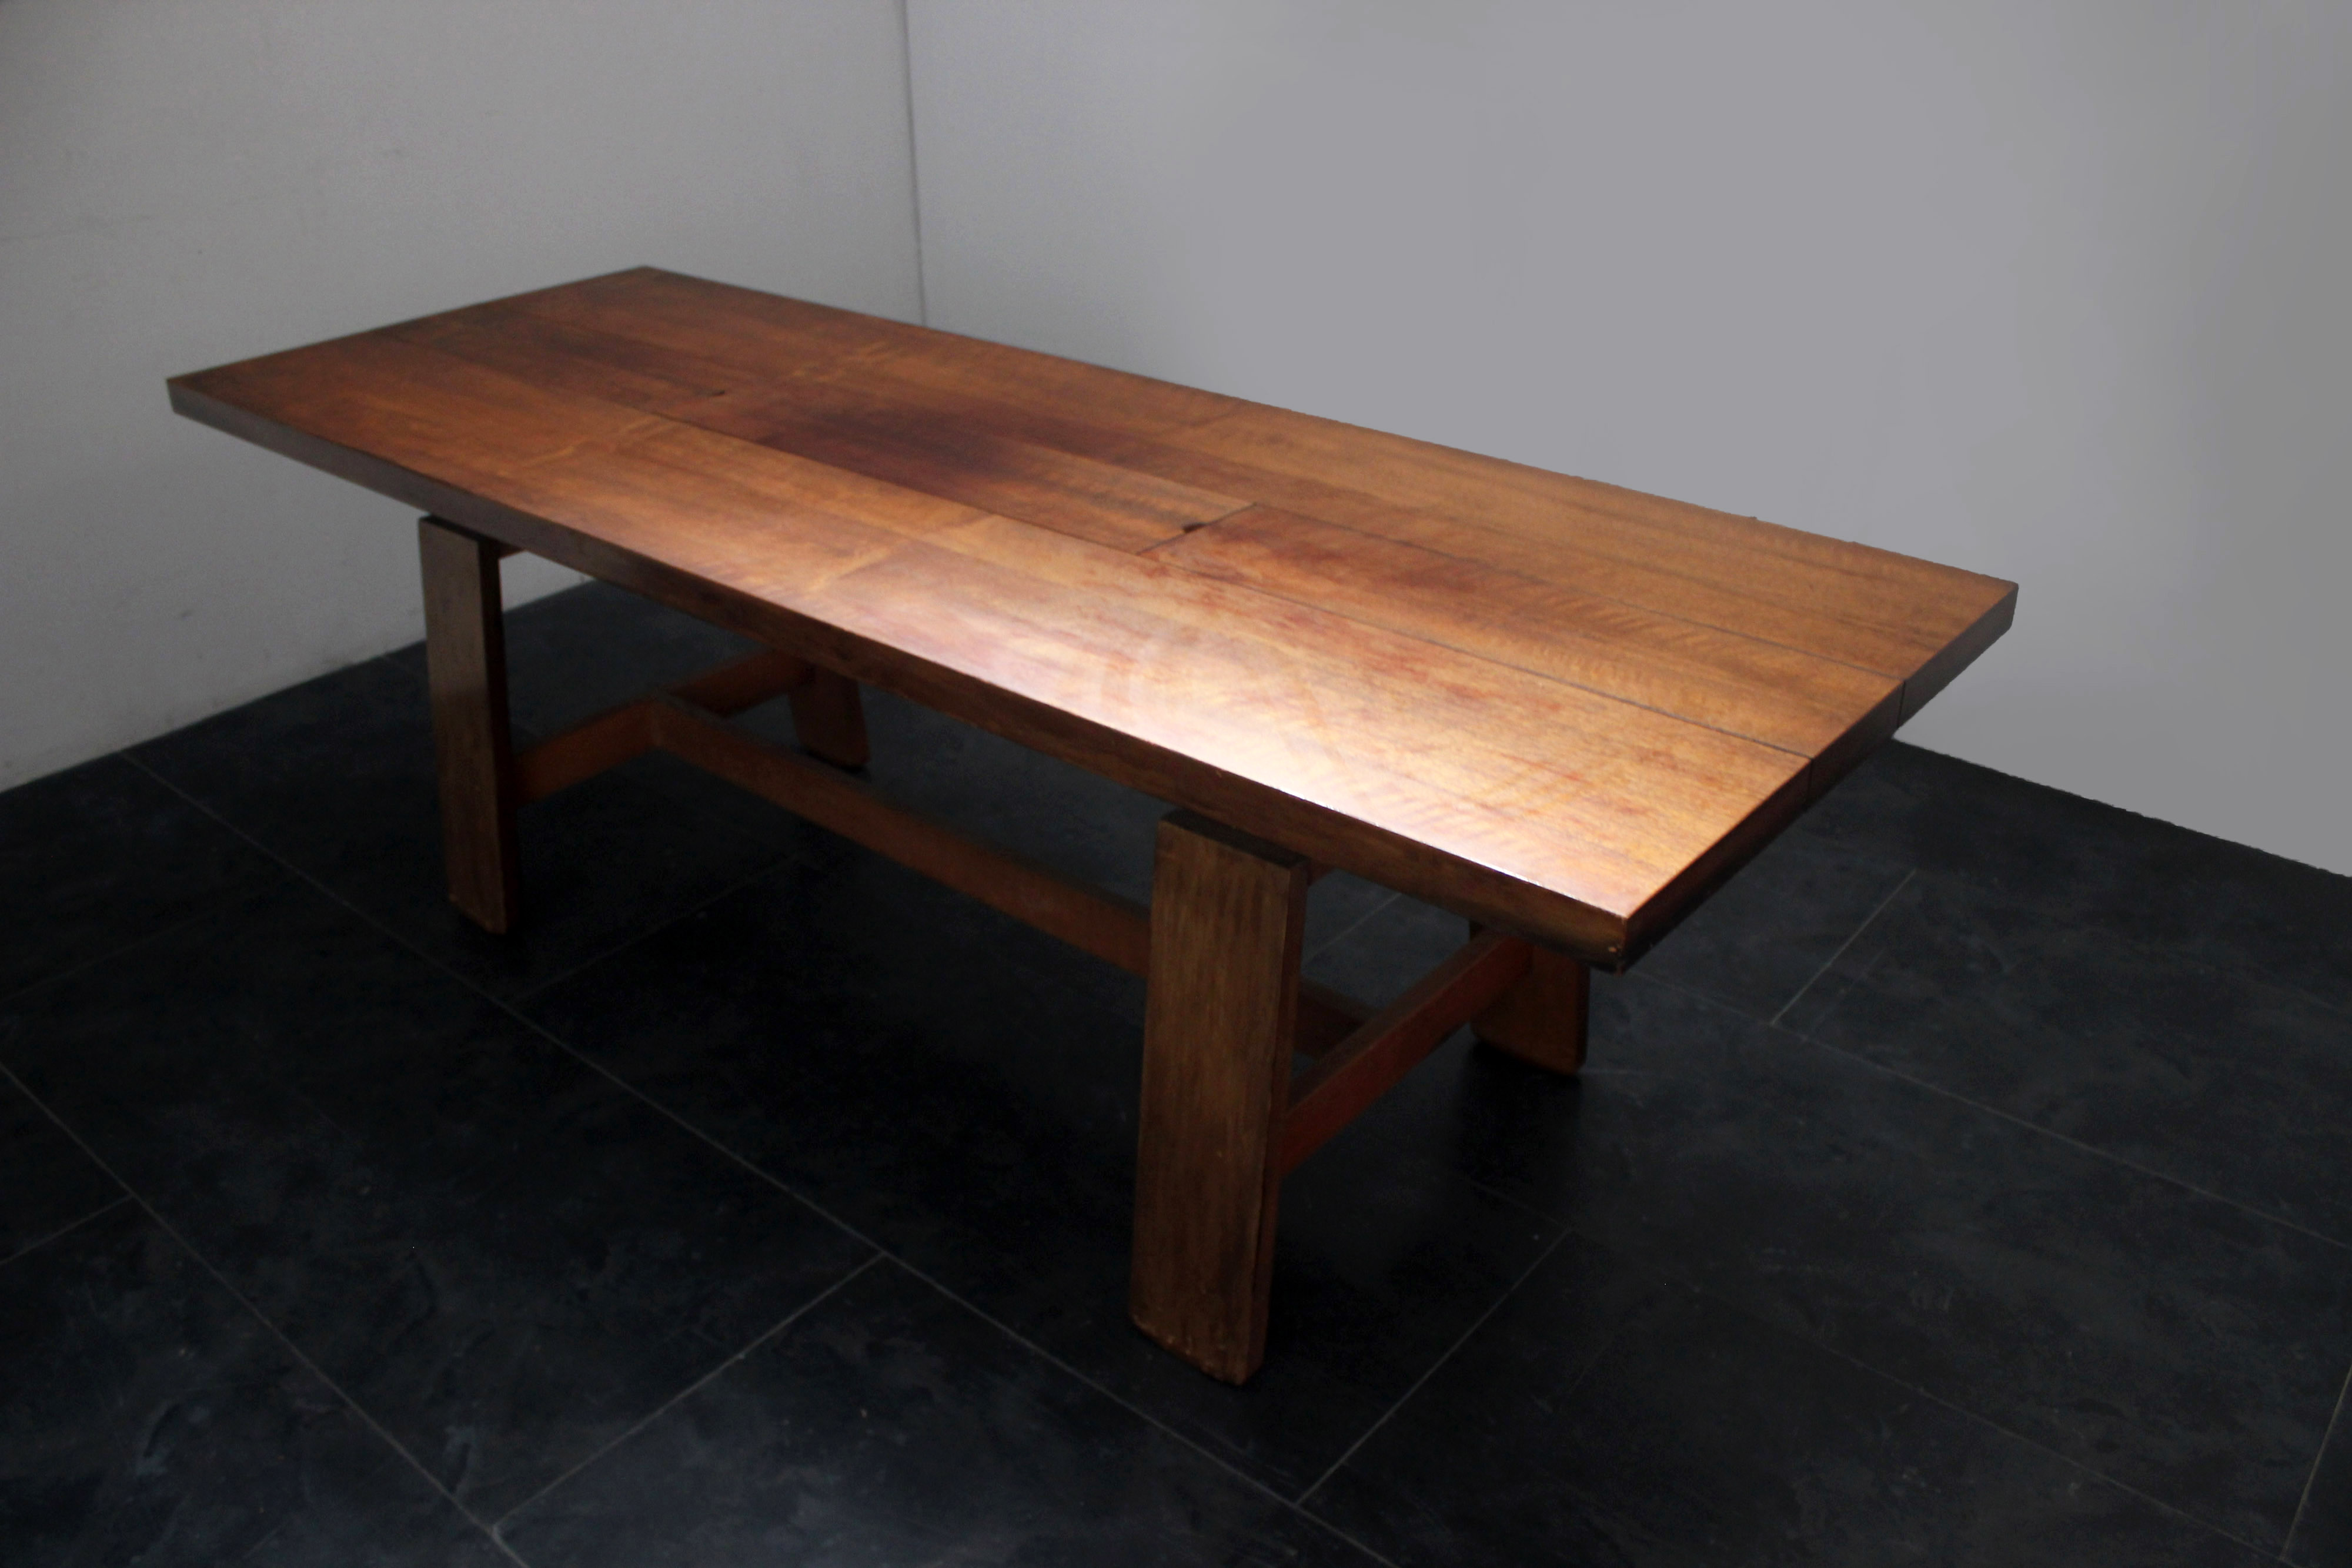 a34-italian-modern-large-dining-table-by-coppola-bernini-italia-top-60-